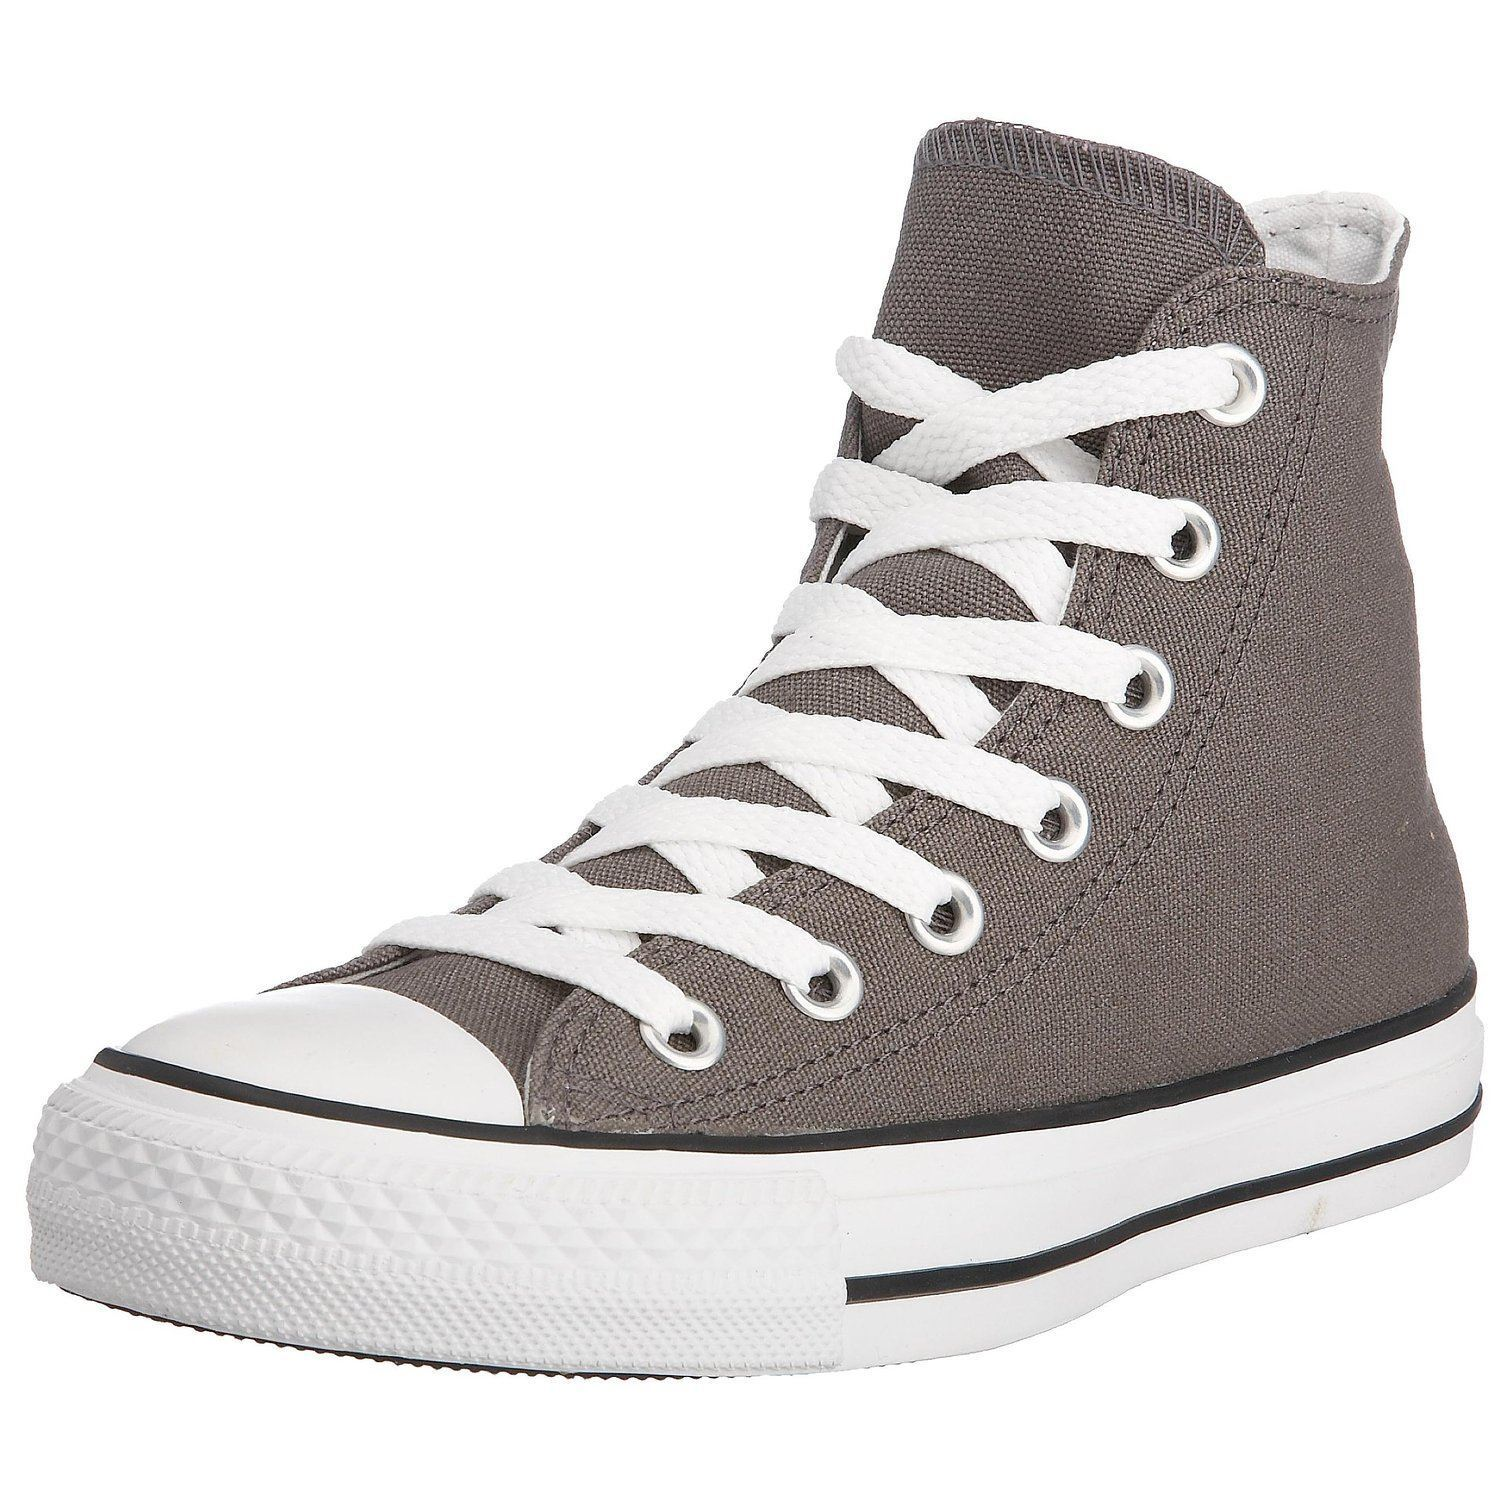 Converse Chuck Taylor All Star Charcoal White Hi Unisex Trainers Stivali